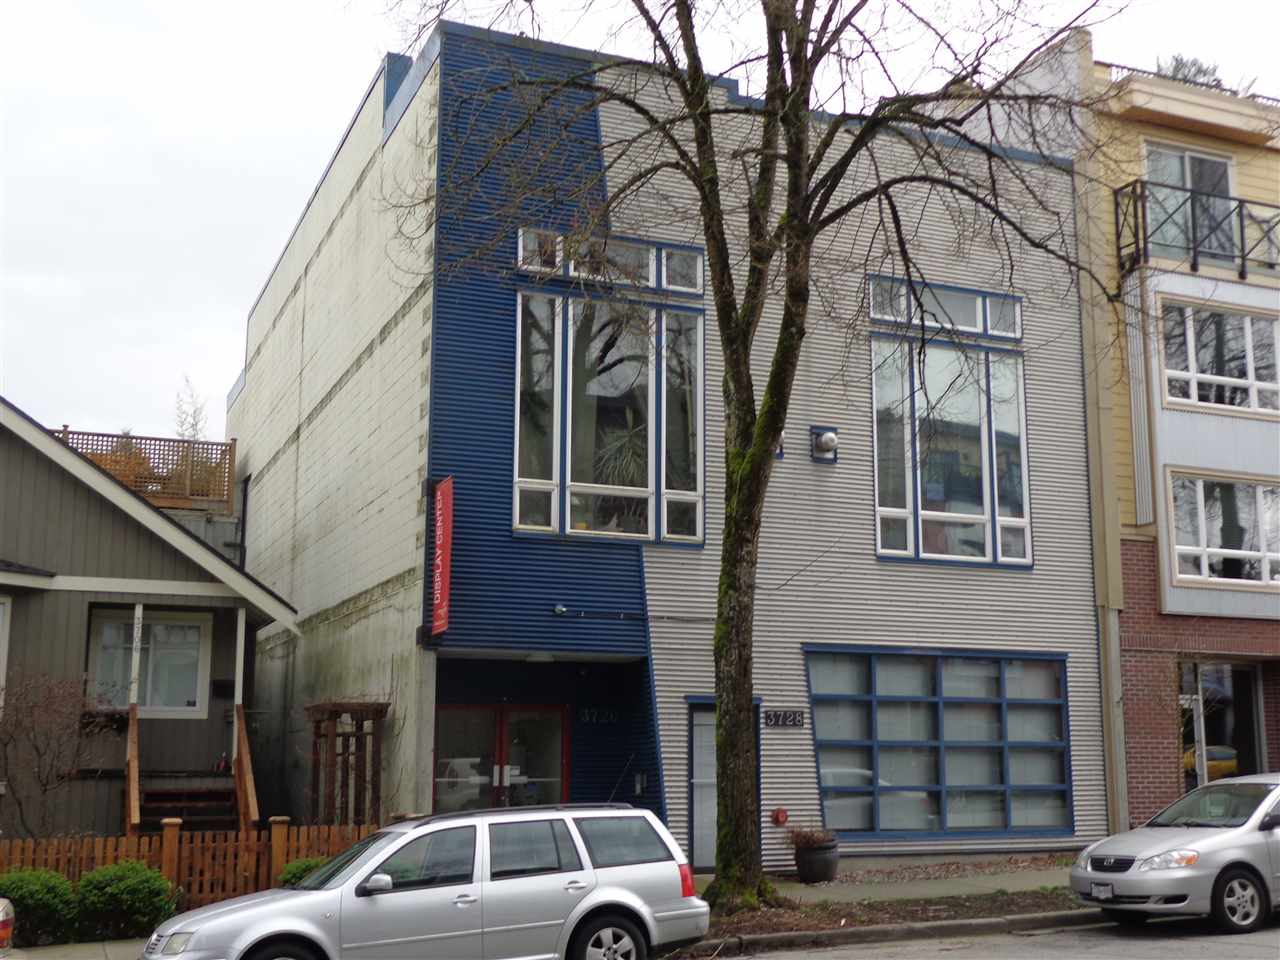 Photo 9: 3 3726 COMMERCIAL STREET in Vancouver: Victoria VE Condo for sale (Vancouver East)  : MLS(r) # R2037396